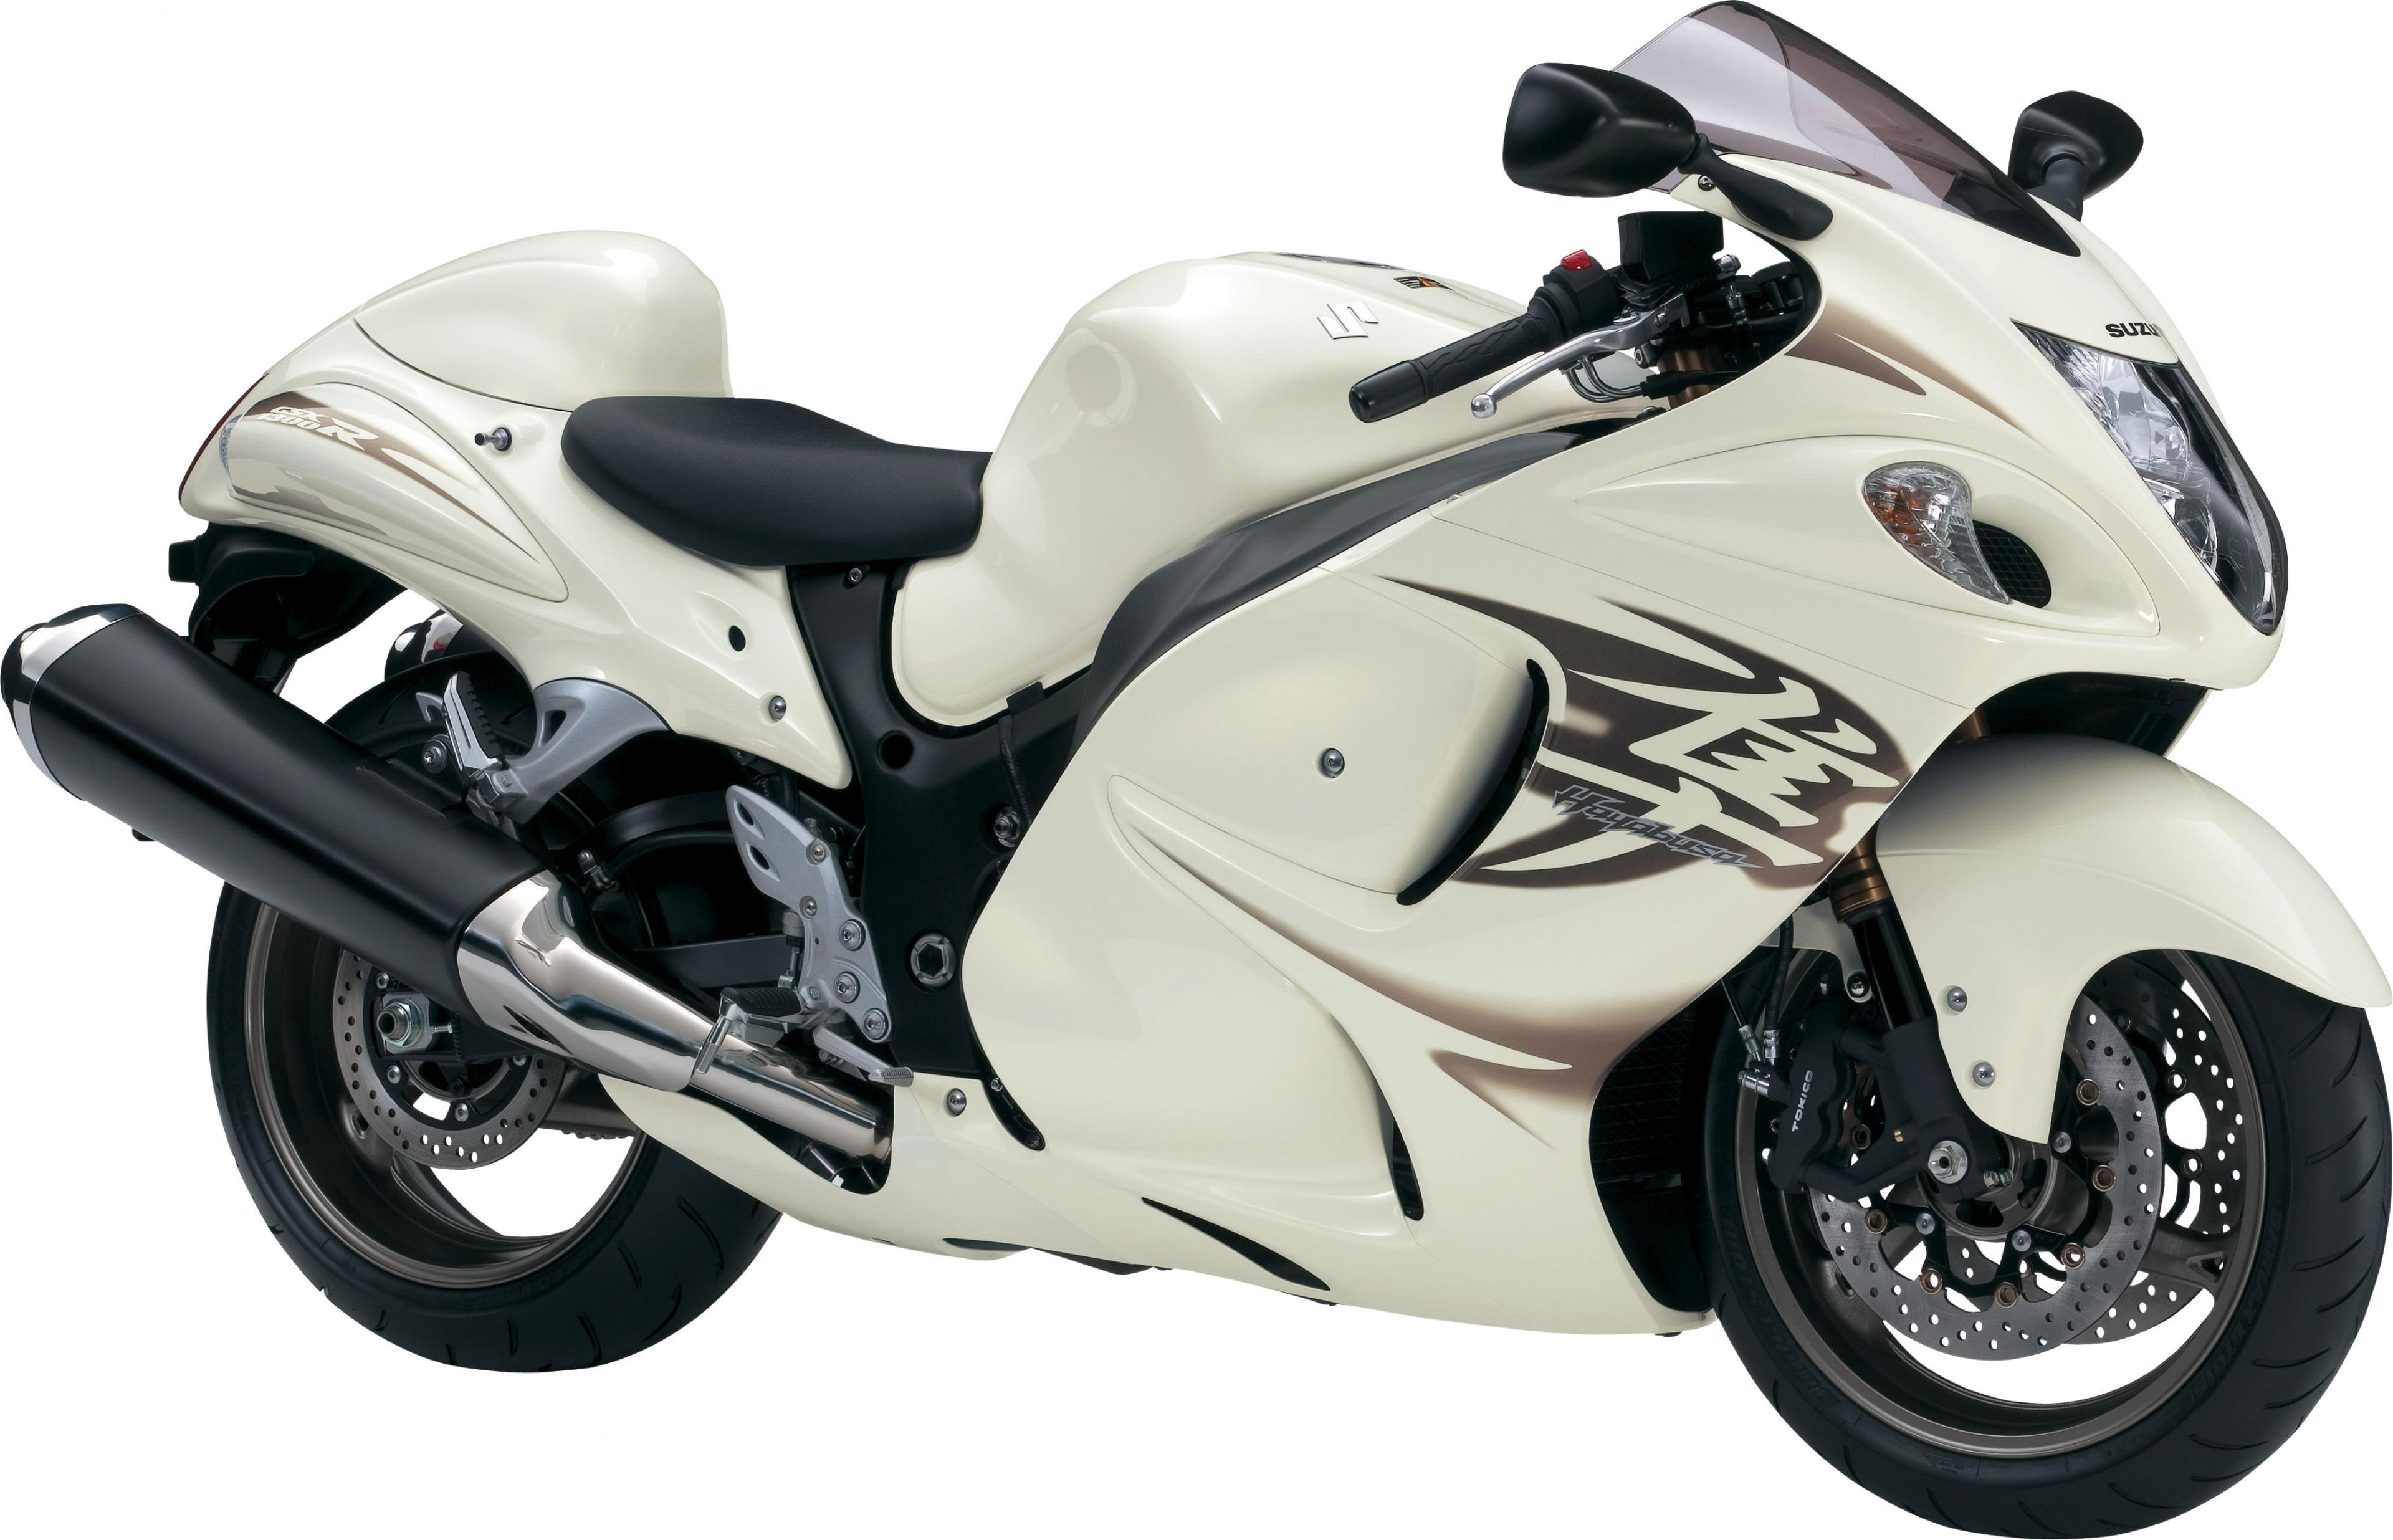 suzuki gsx1300r hayabusa (2008-2018) • for sale • price guide • the